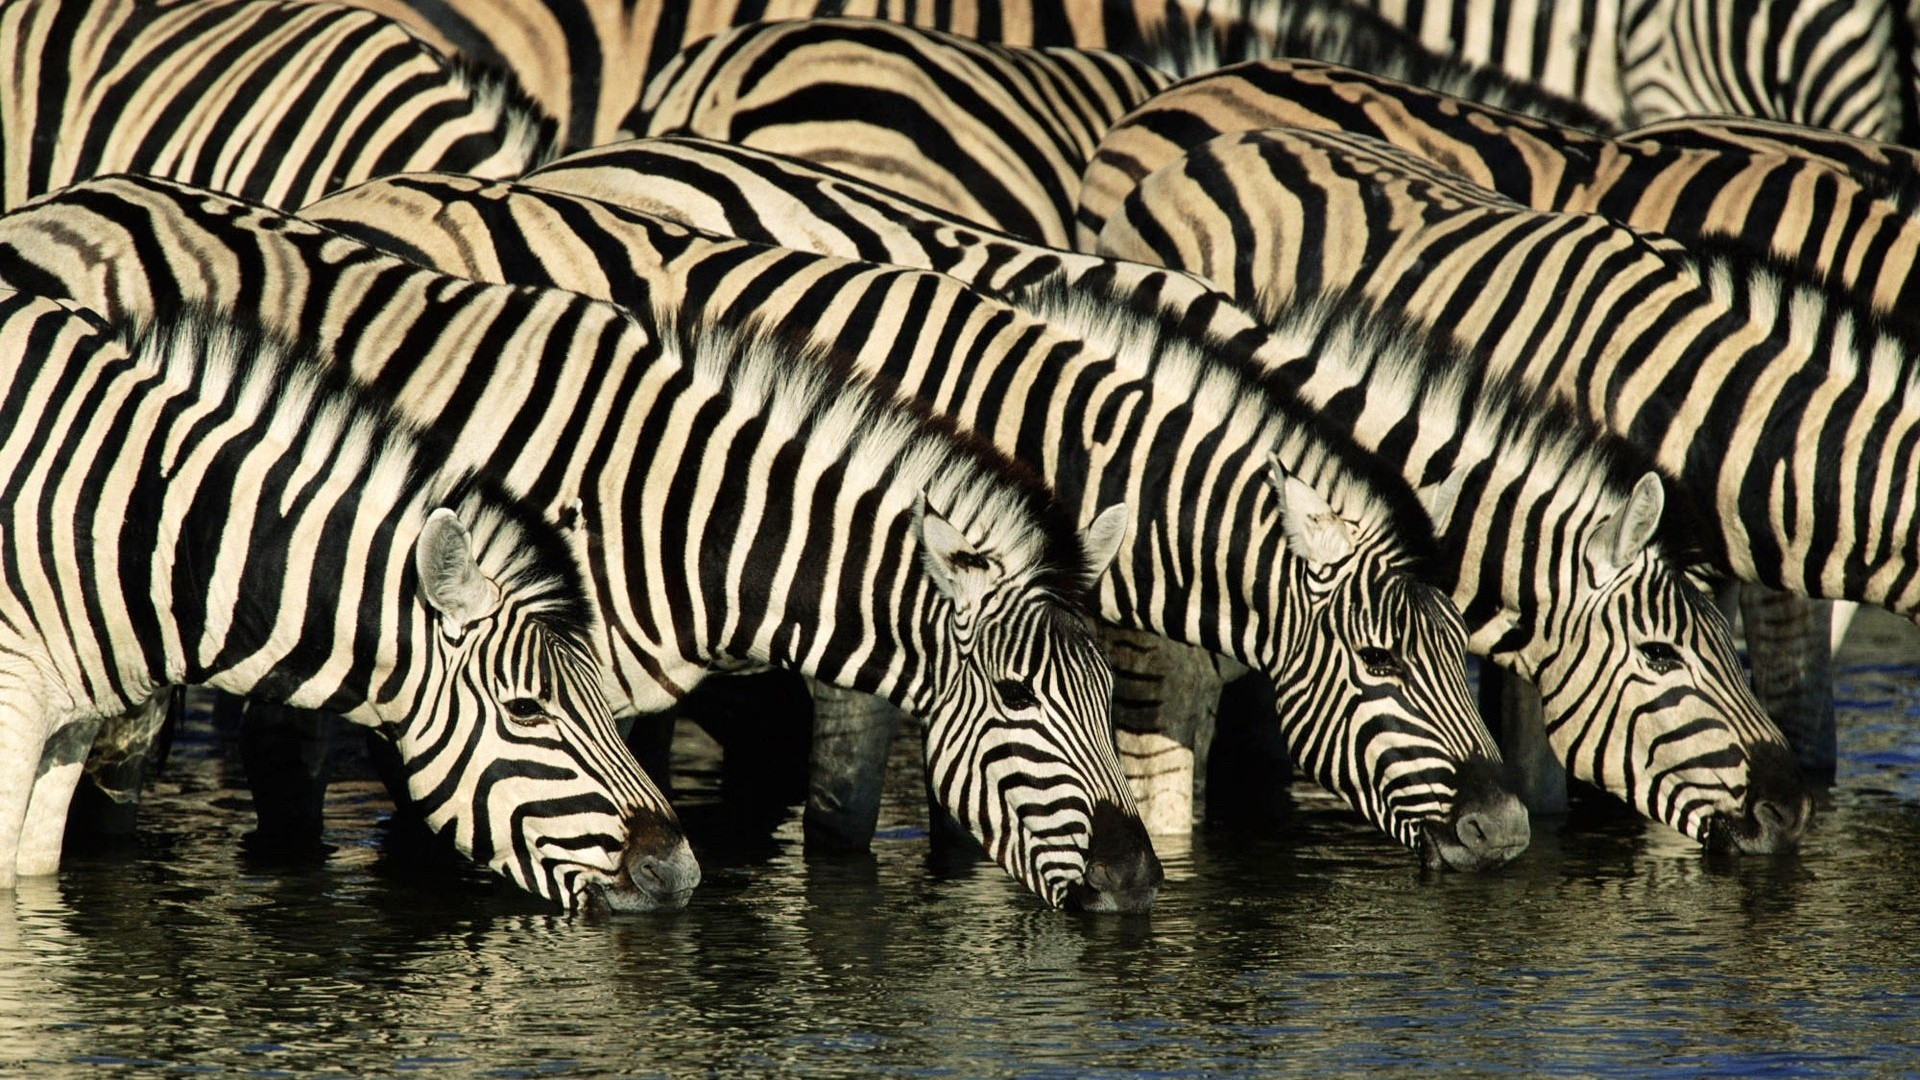 water Animals wildlife zebras HD Wallpaper